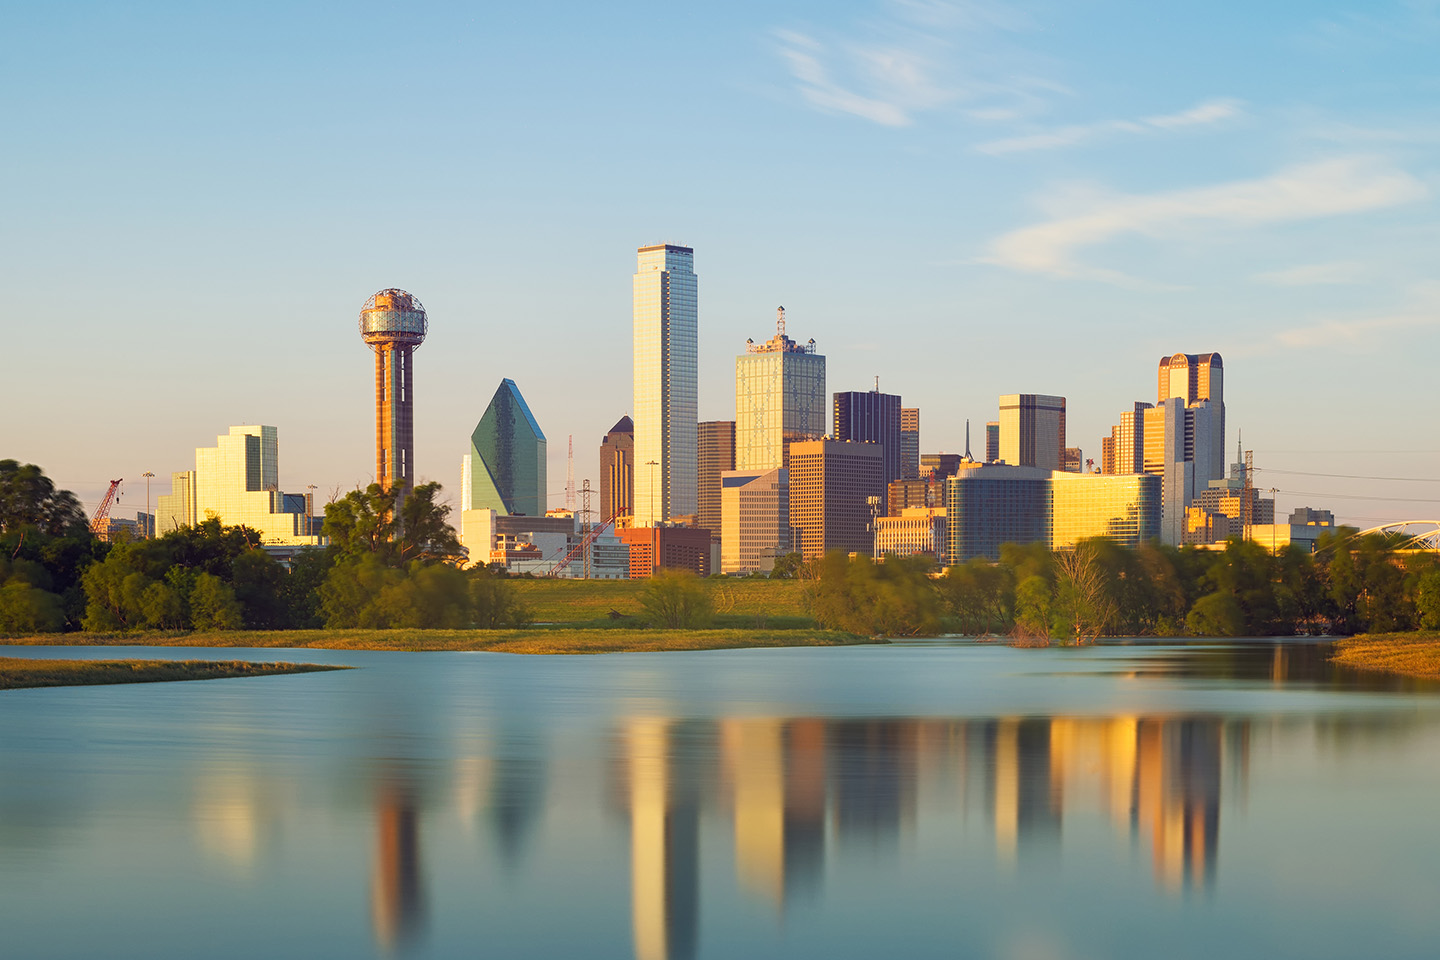 The skyline of Dallas, Texas, seen from the Trinity River